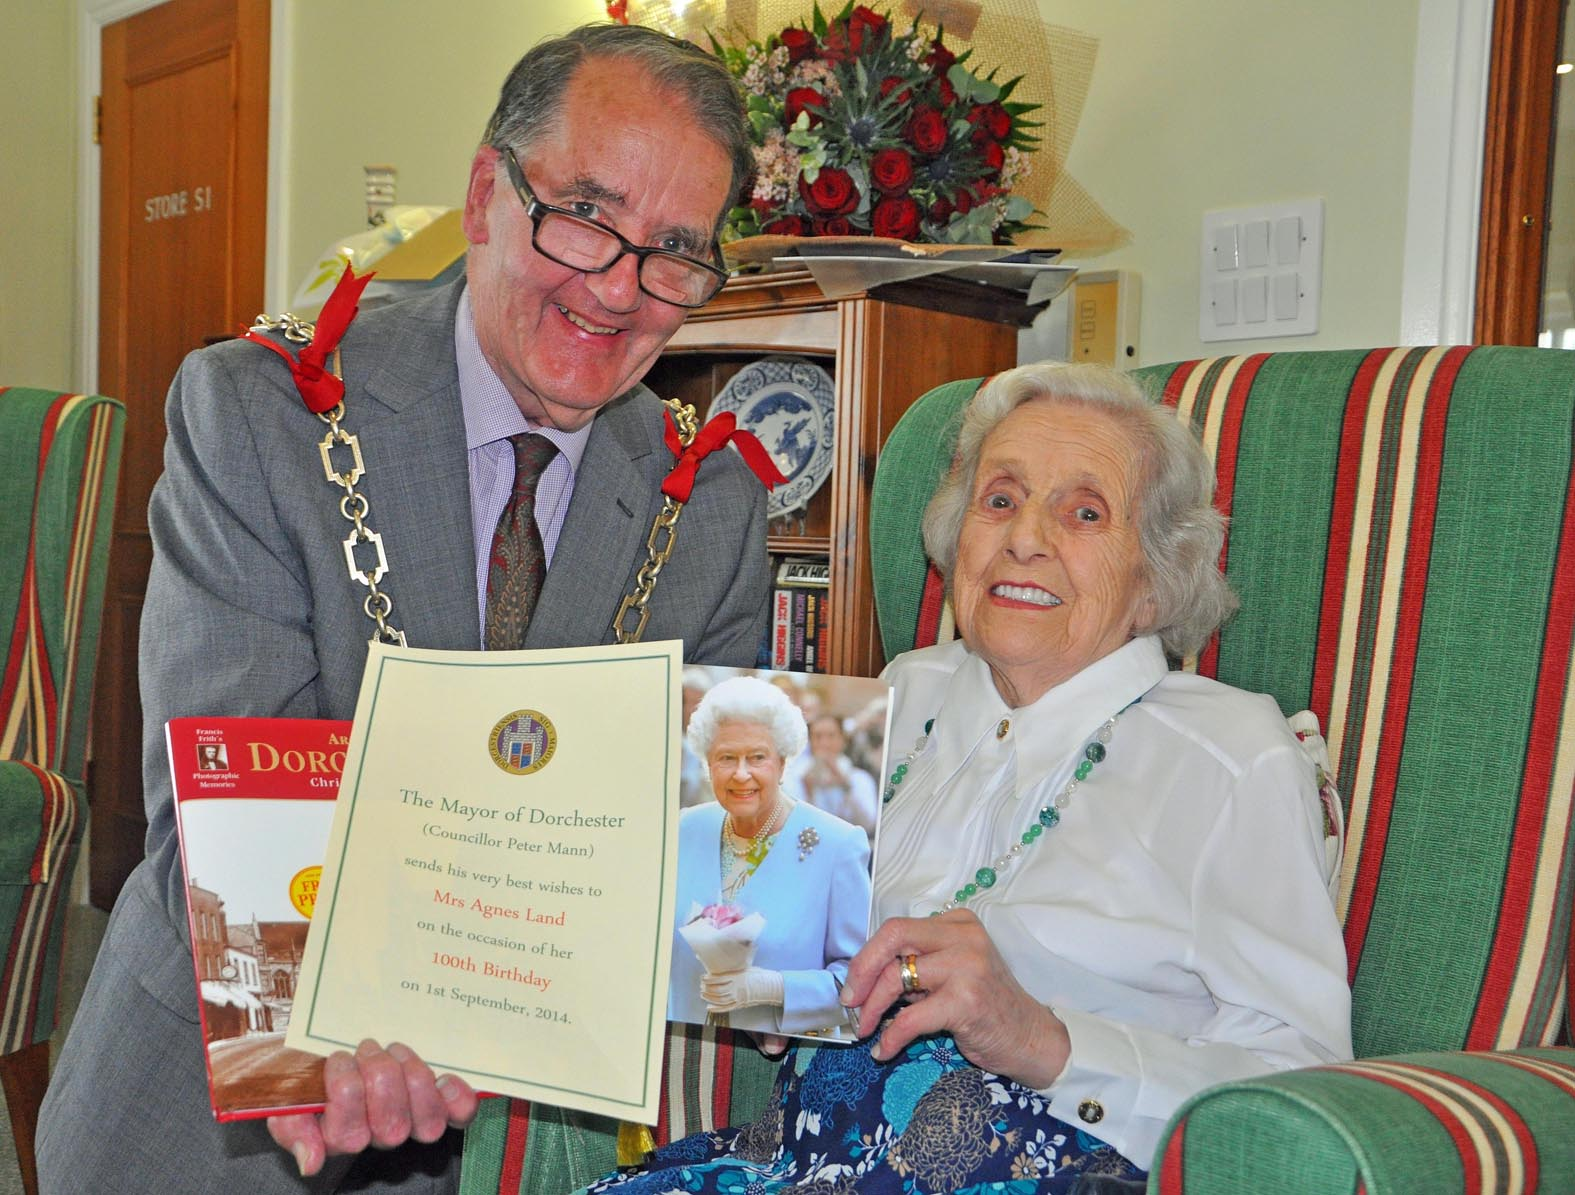 Centenarian Agnes is 100 years young at Castle View – 100 Birthday Card from Queen